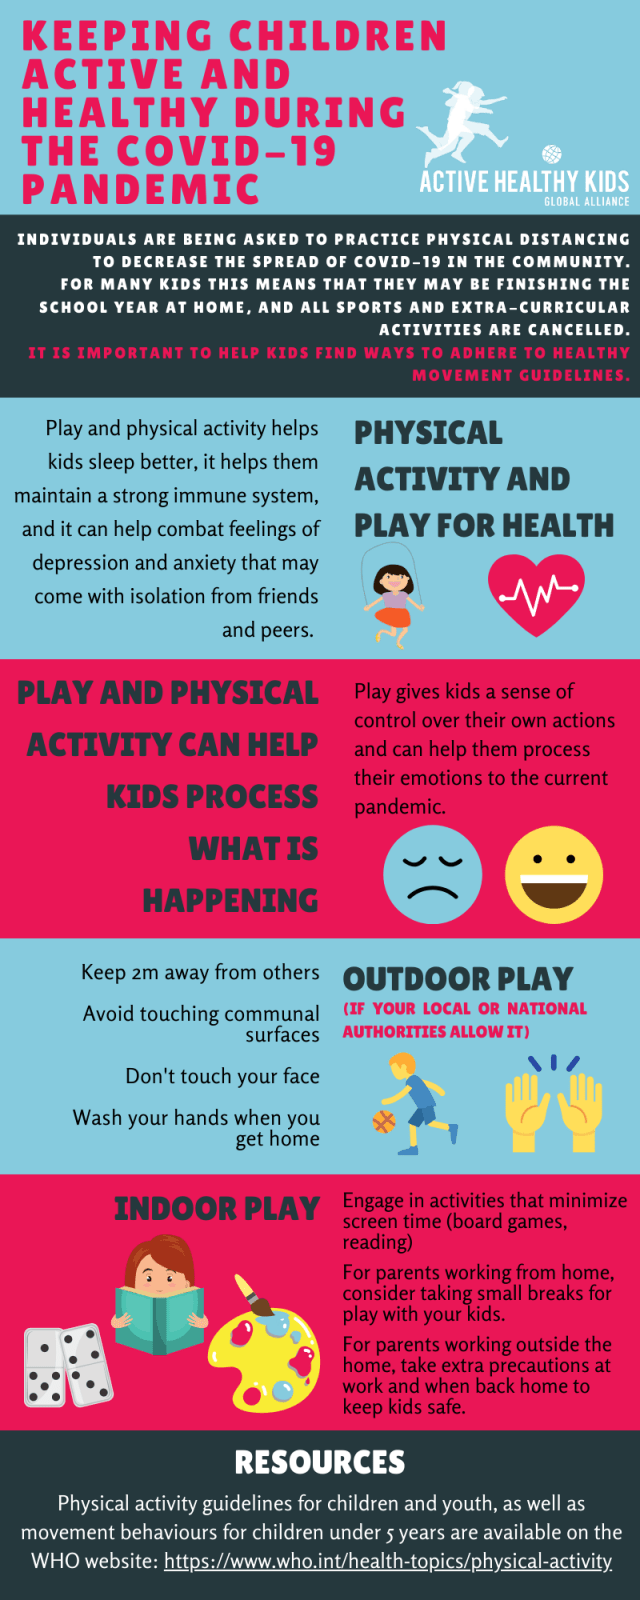 Guidance On Healthy Movement Behaviours For Kids During The Covid